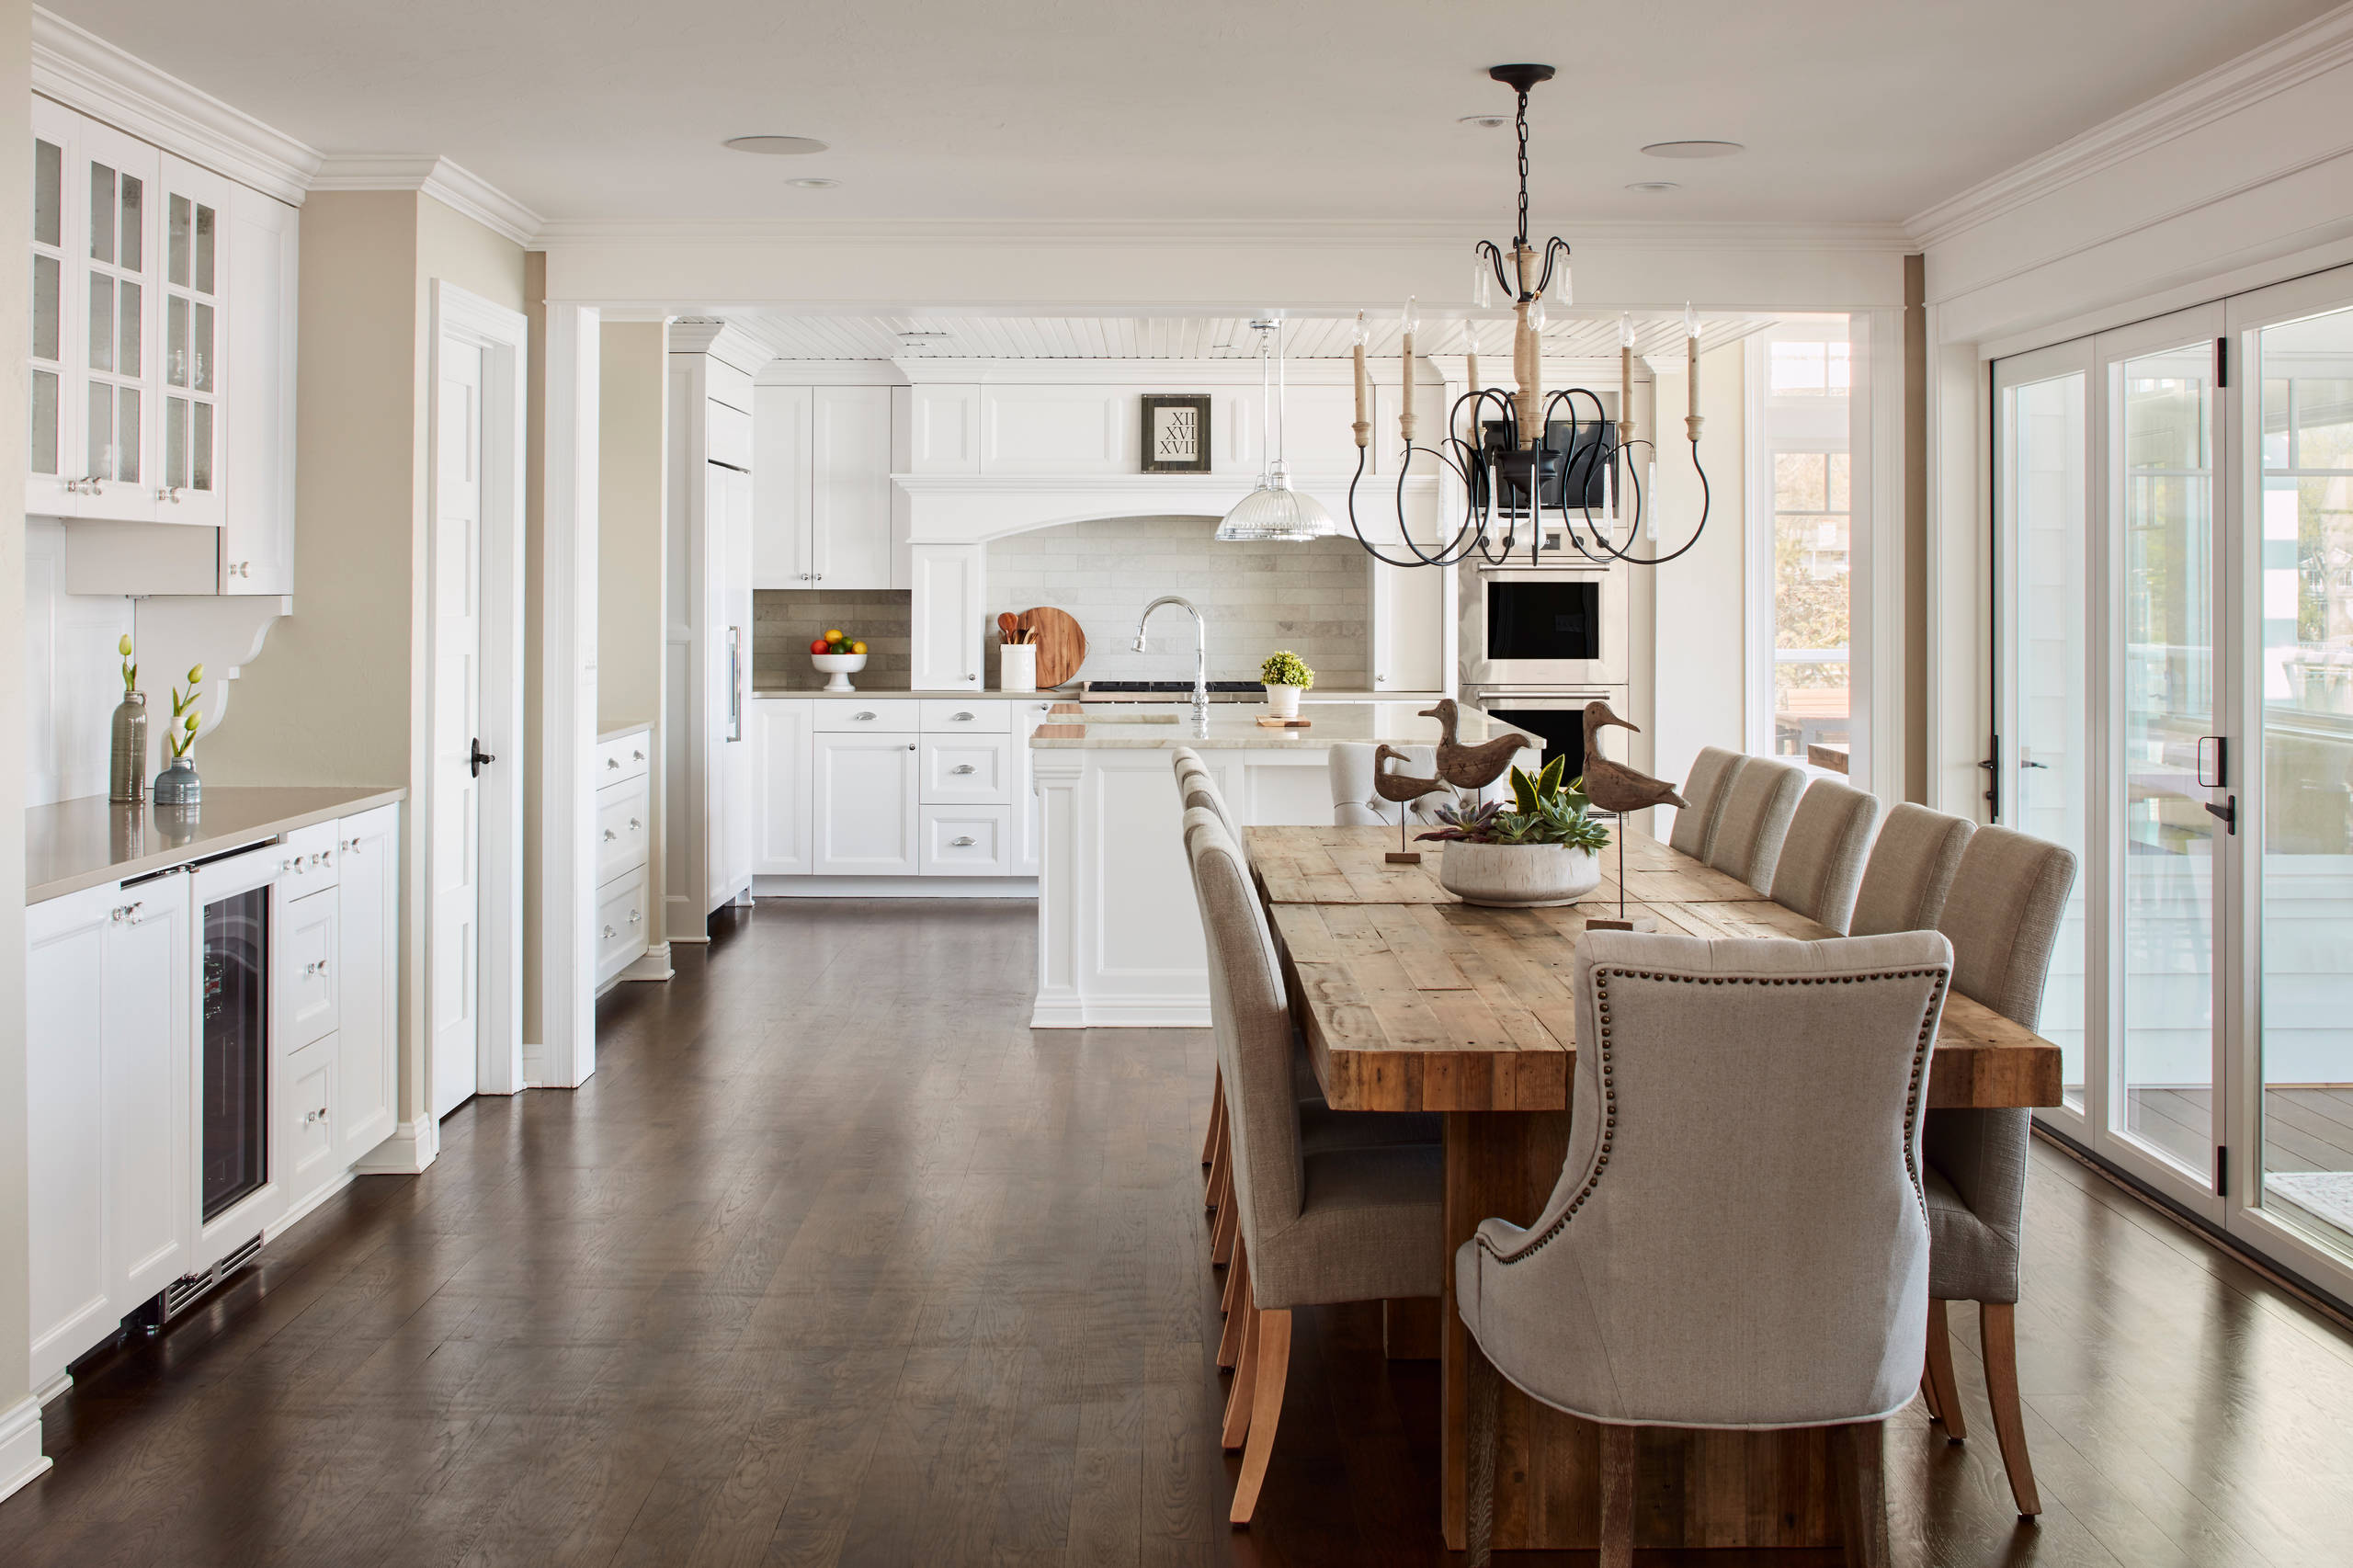 75 Beautiful Kitchen Dining Room Combo Pictures Ideas January 2021 Houzz